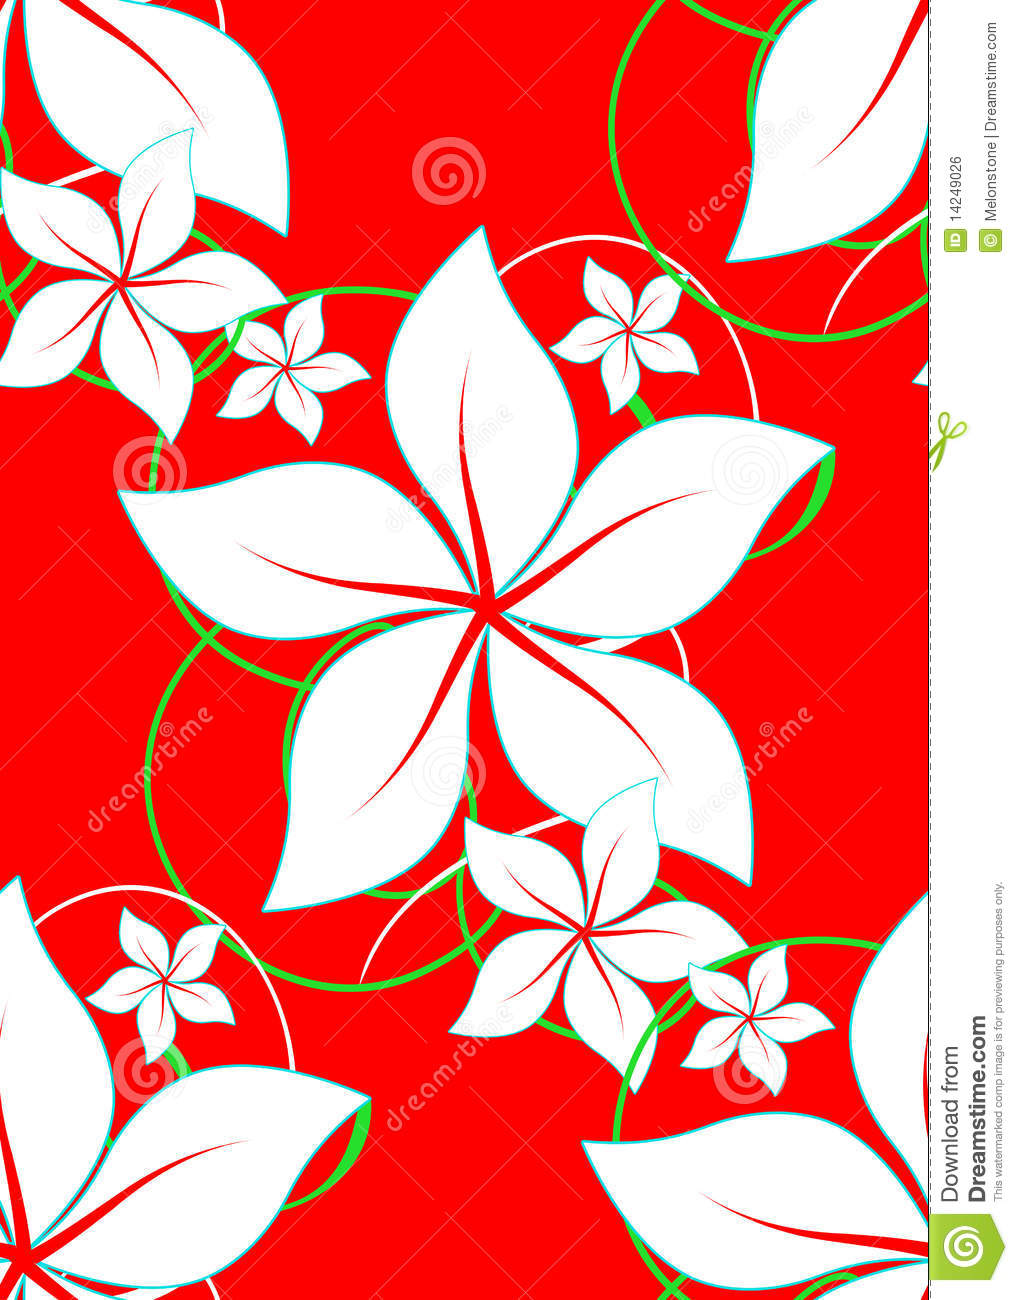 Red Hawaii Aloha Stock Illustration Illustration Of Design 14249026